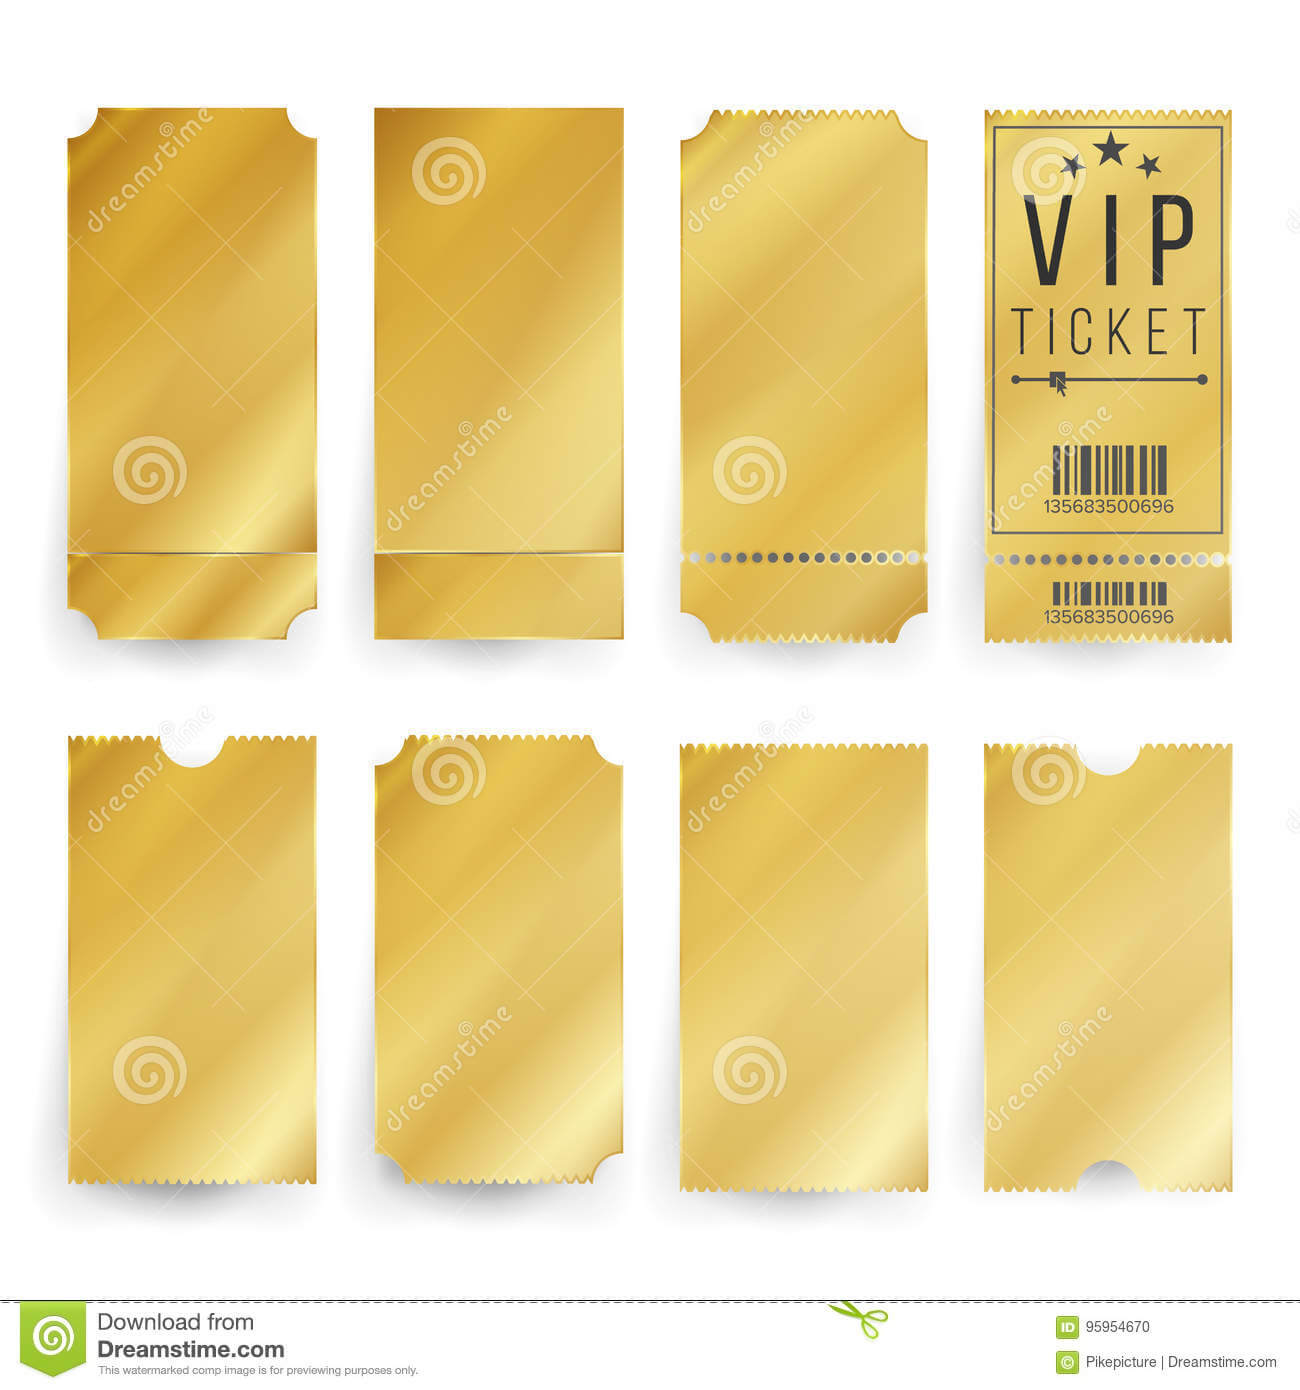 Vip Ticket Template Vector. Empty Golden Tickets And Coupons Throughout Blank Train Ticket Template